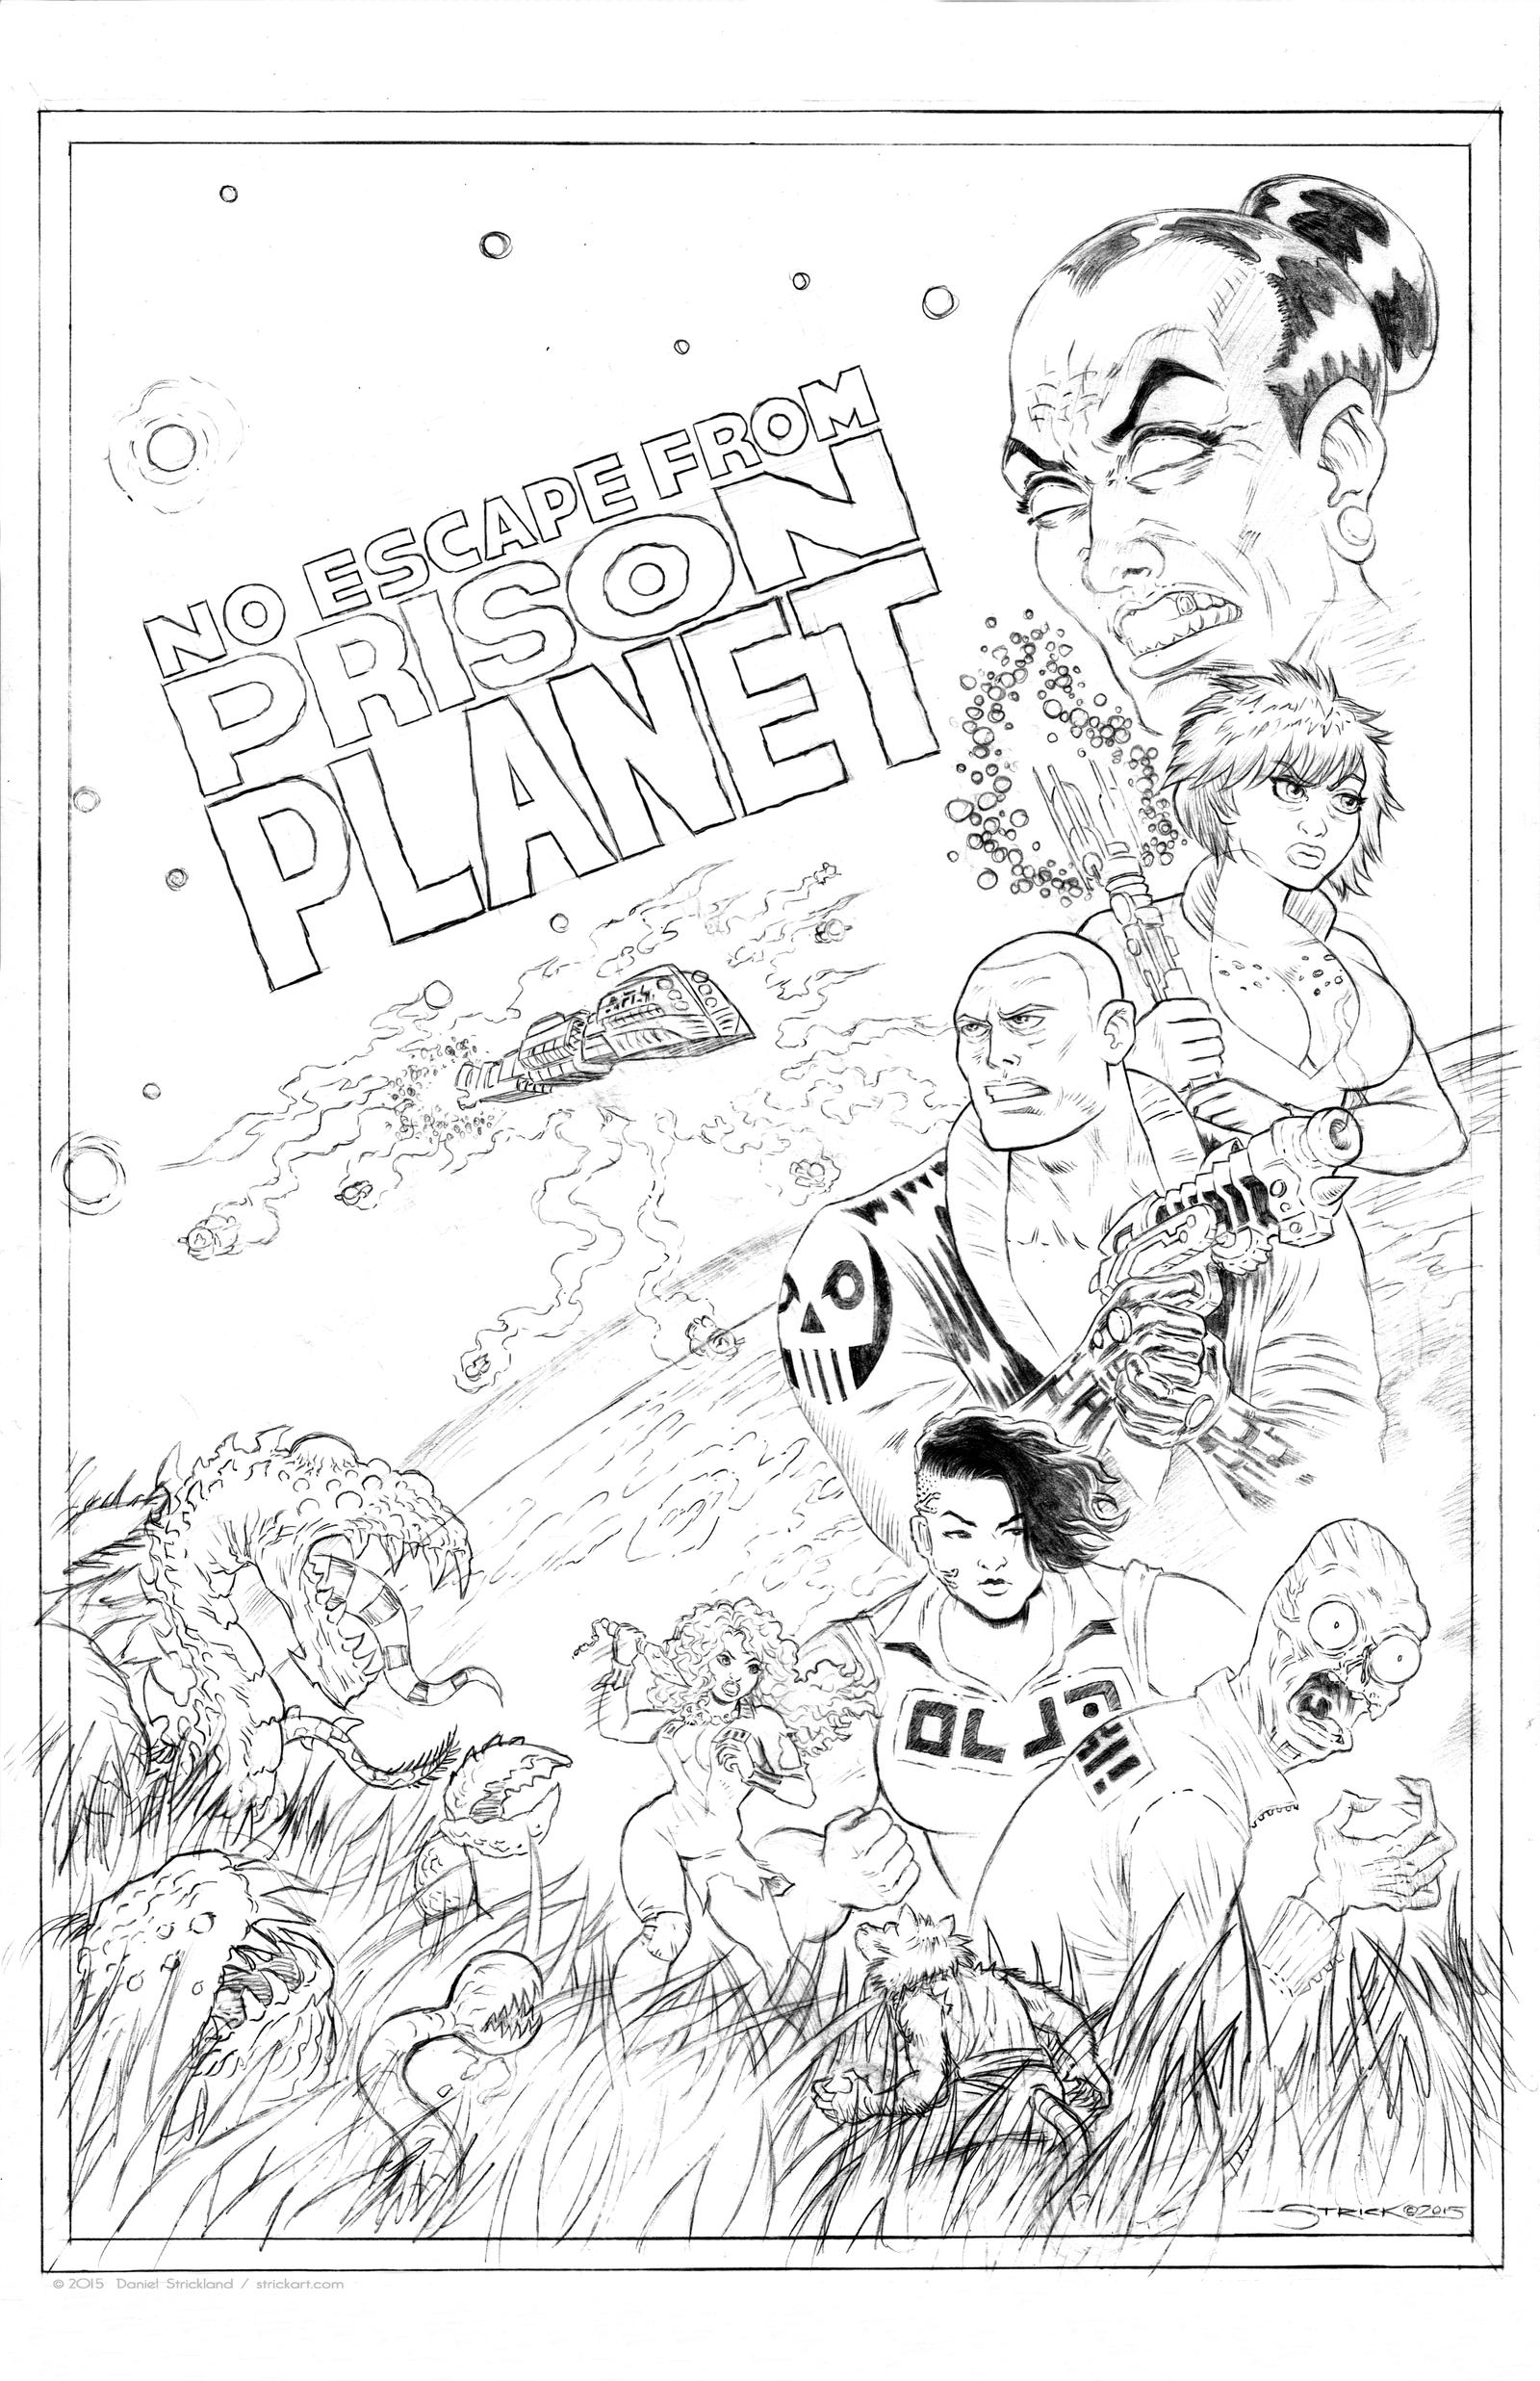 Prison Planet cover WIP 3 by strickart